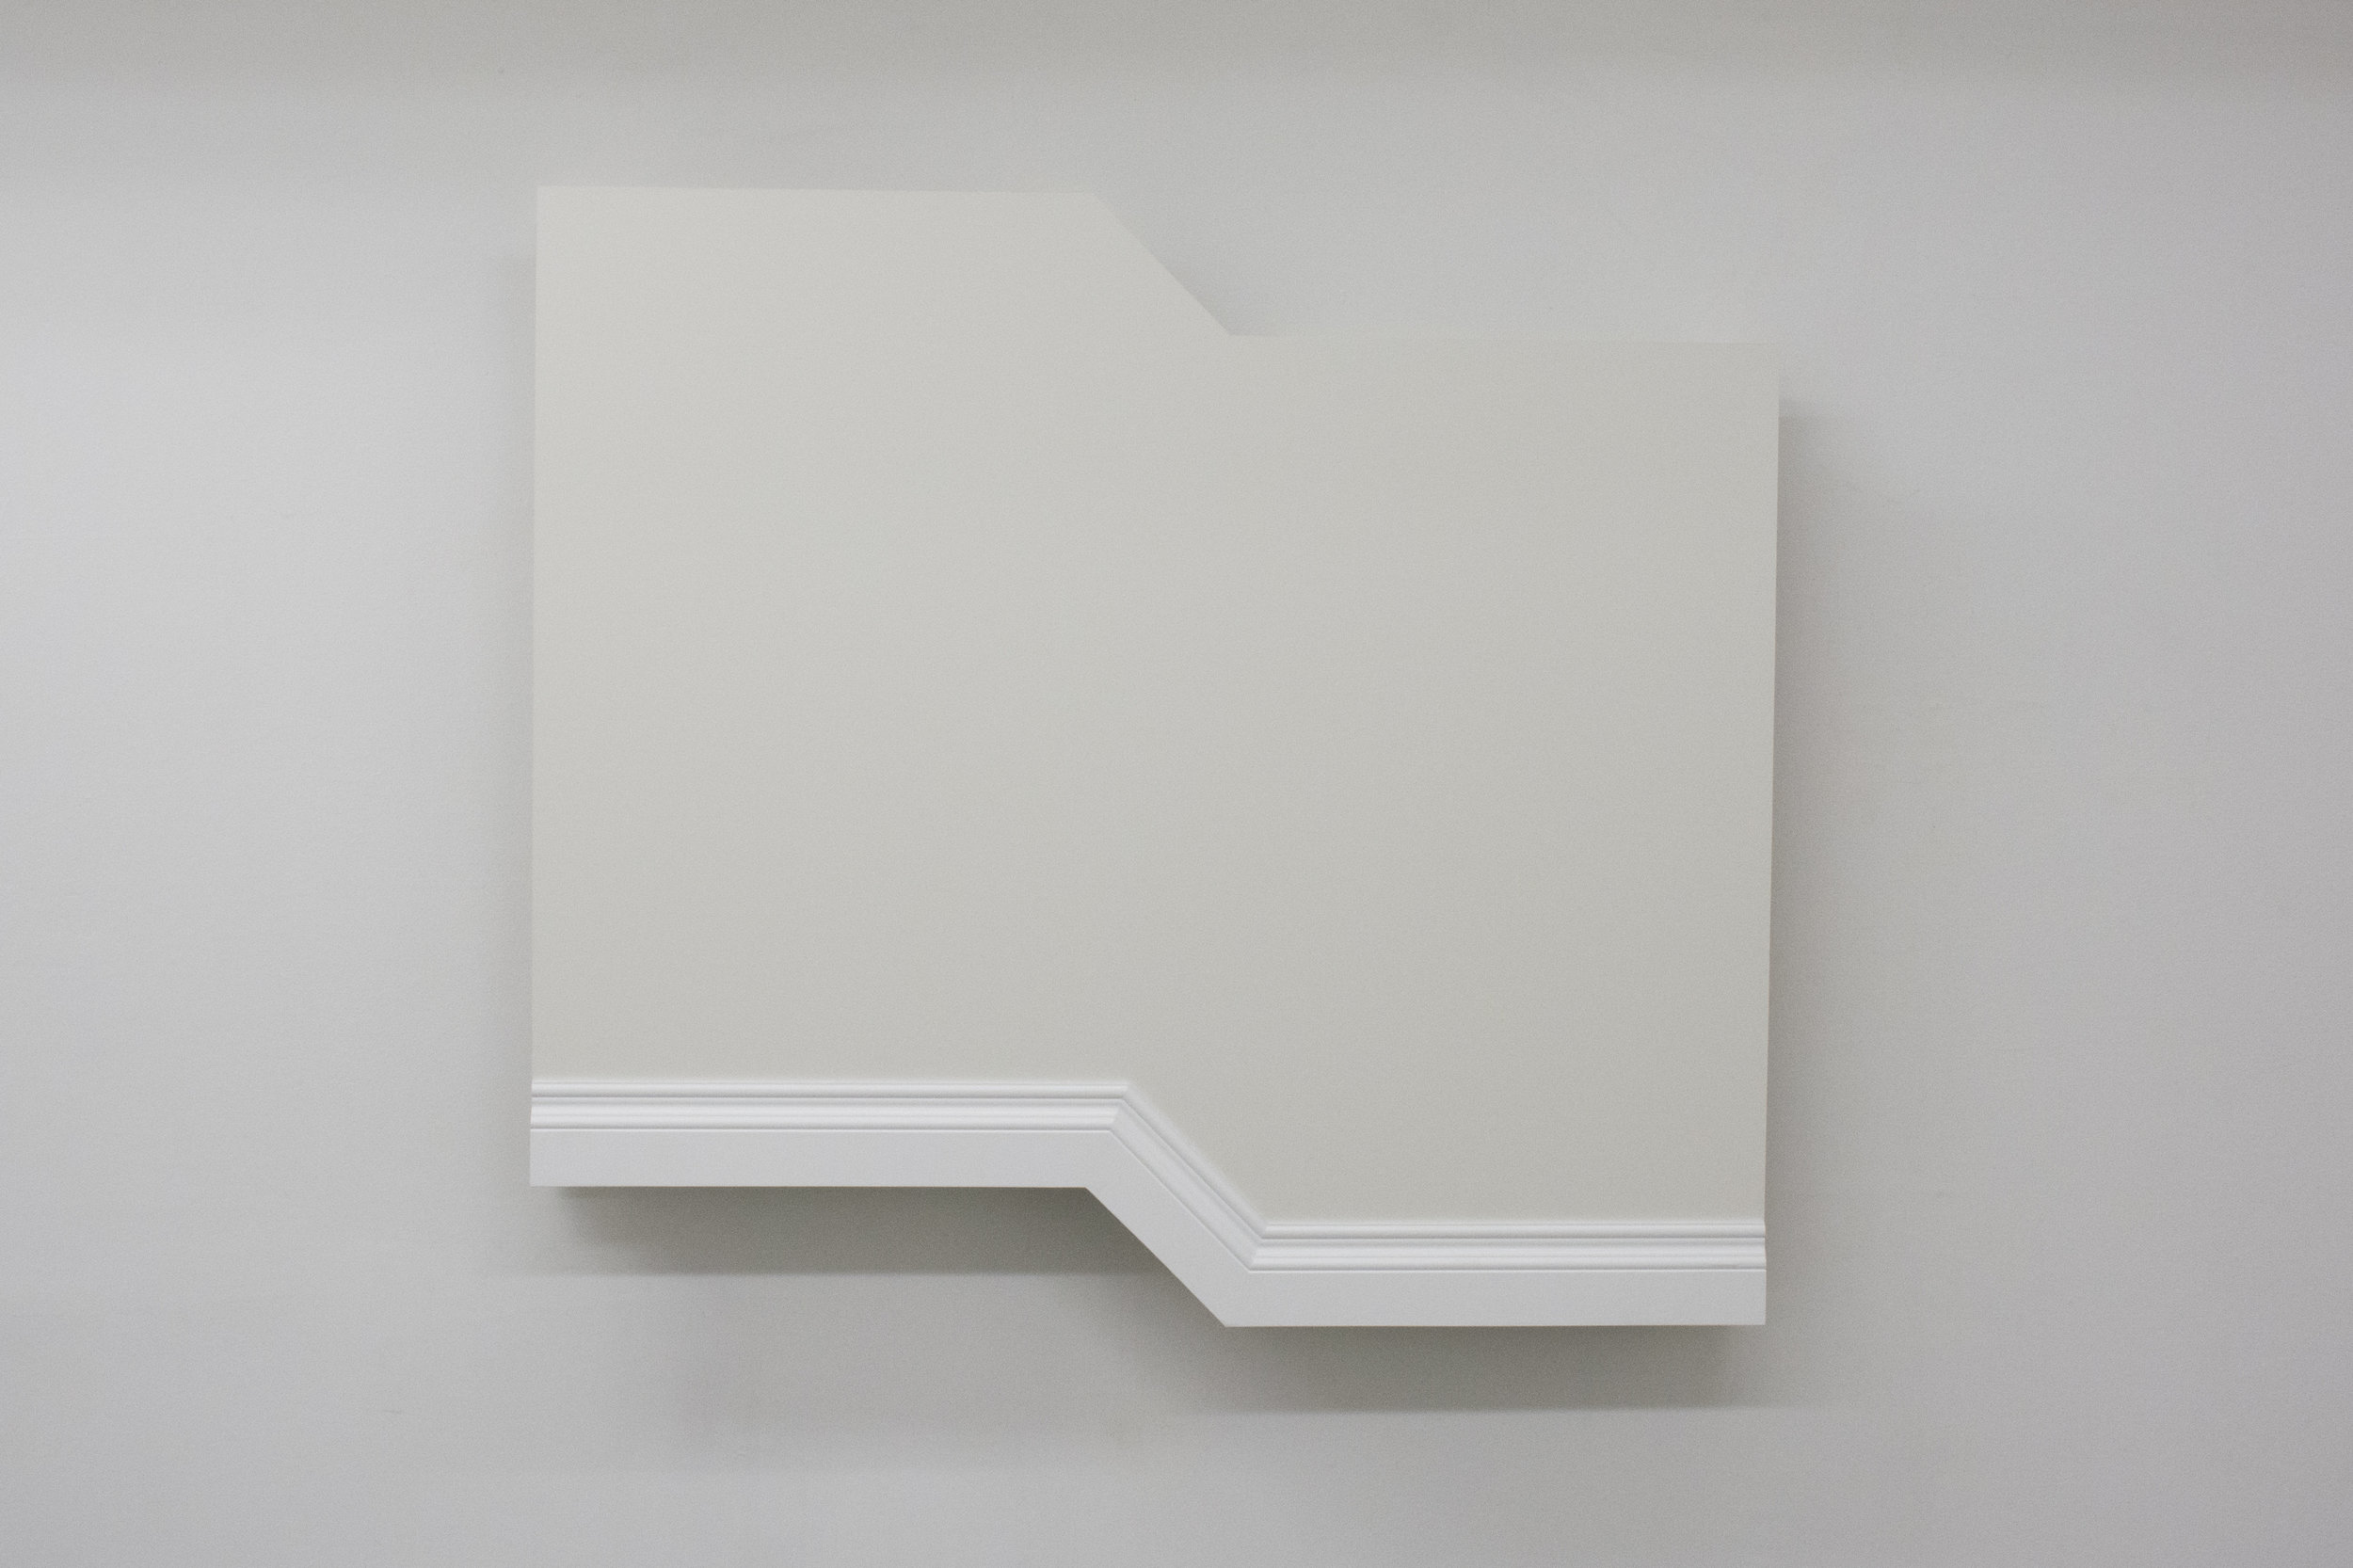 Staggered (Baseboard)